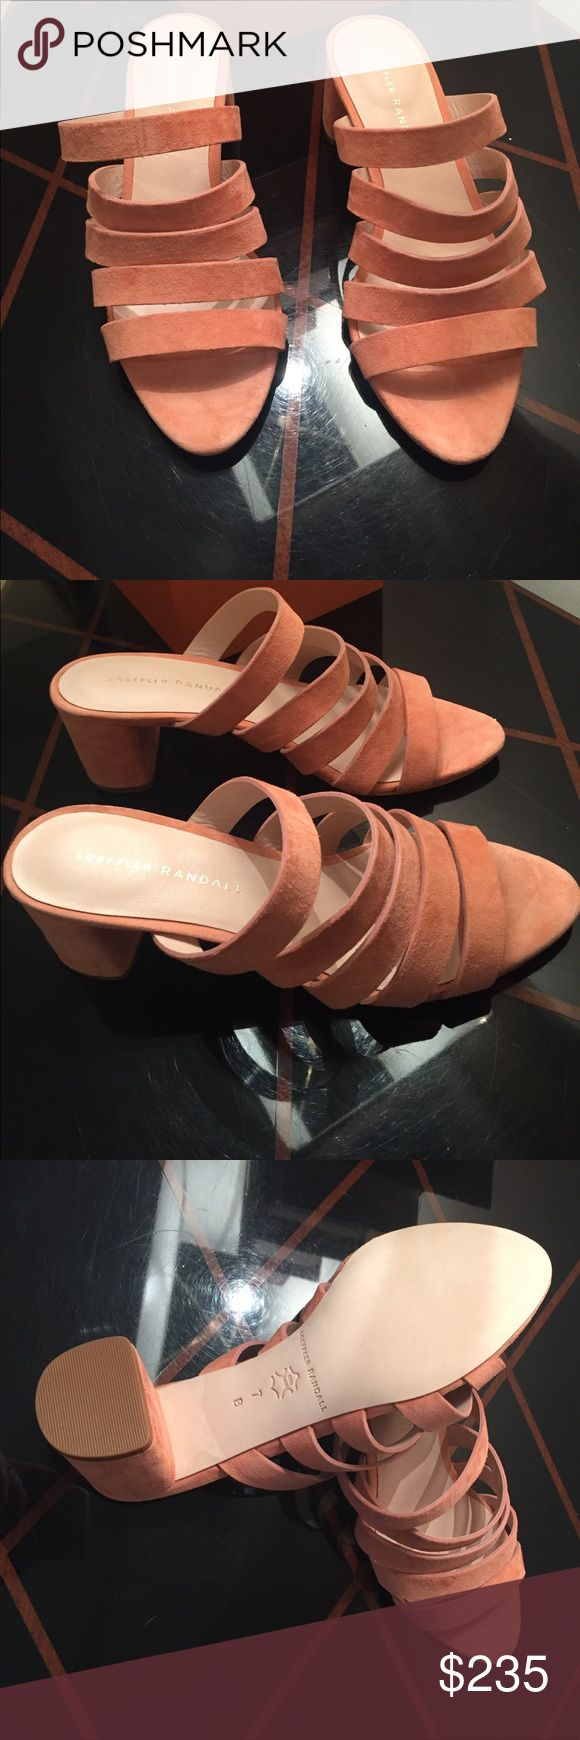 Loeffler Randall Finley Strappy Mike. Brand New. Loeffler Randall Finley Strappy Mike. Brand New. NEVER WORN. Size 7. Loeffler Randall Shoes Sandals